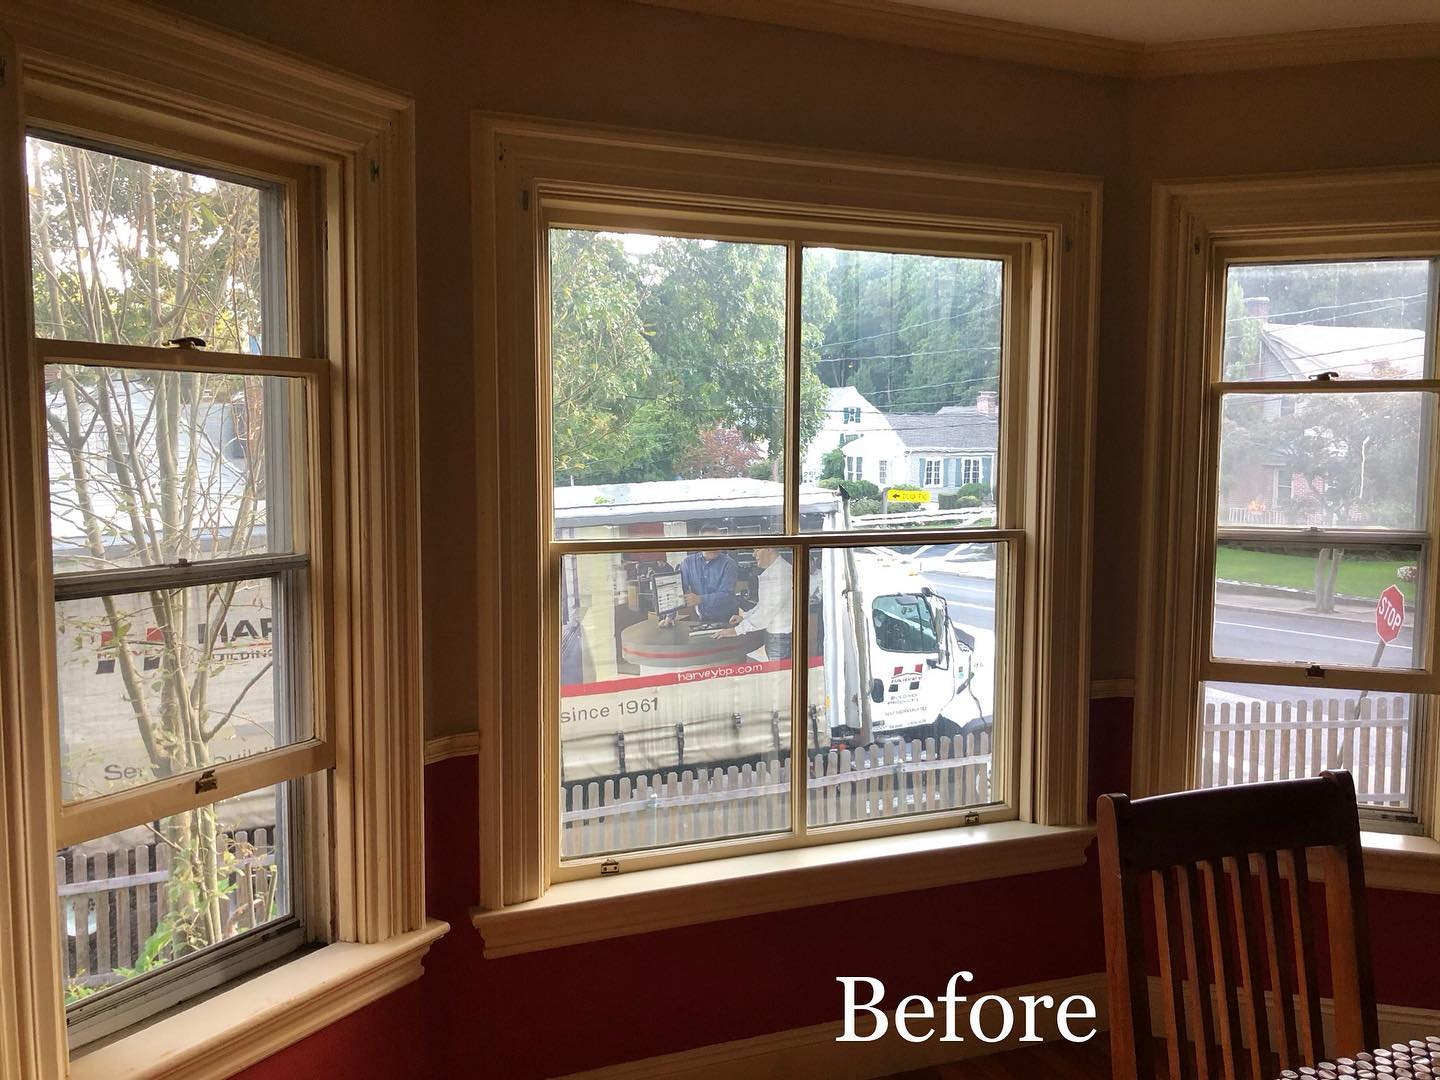 Before Pictures of Window Replacement Project in Cranston, RI